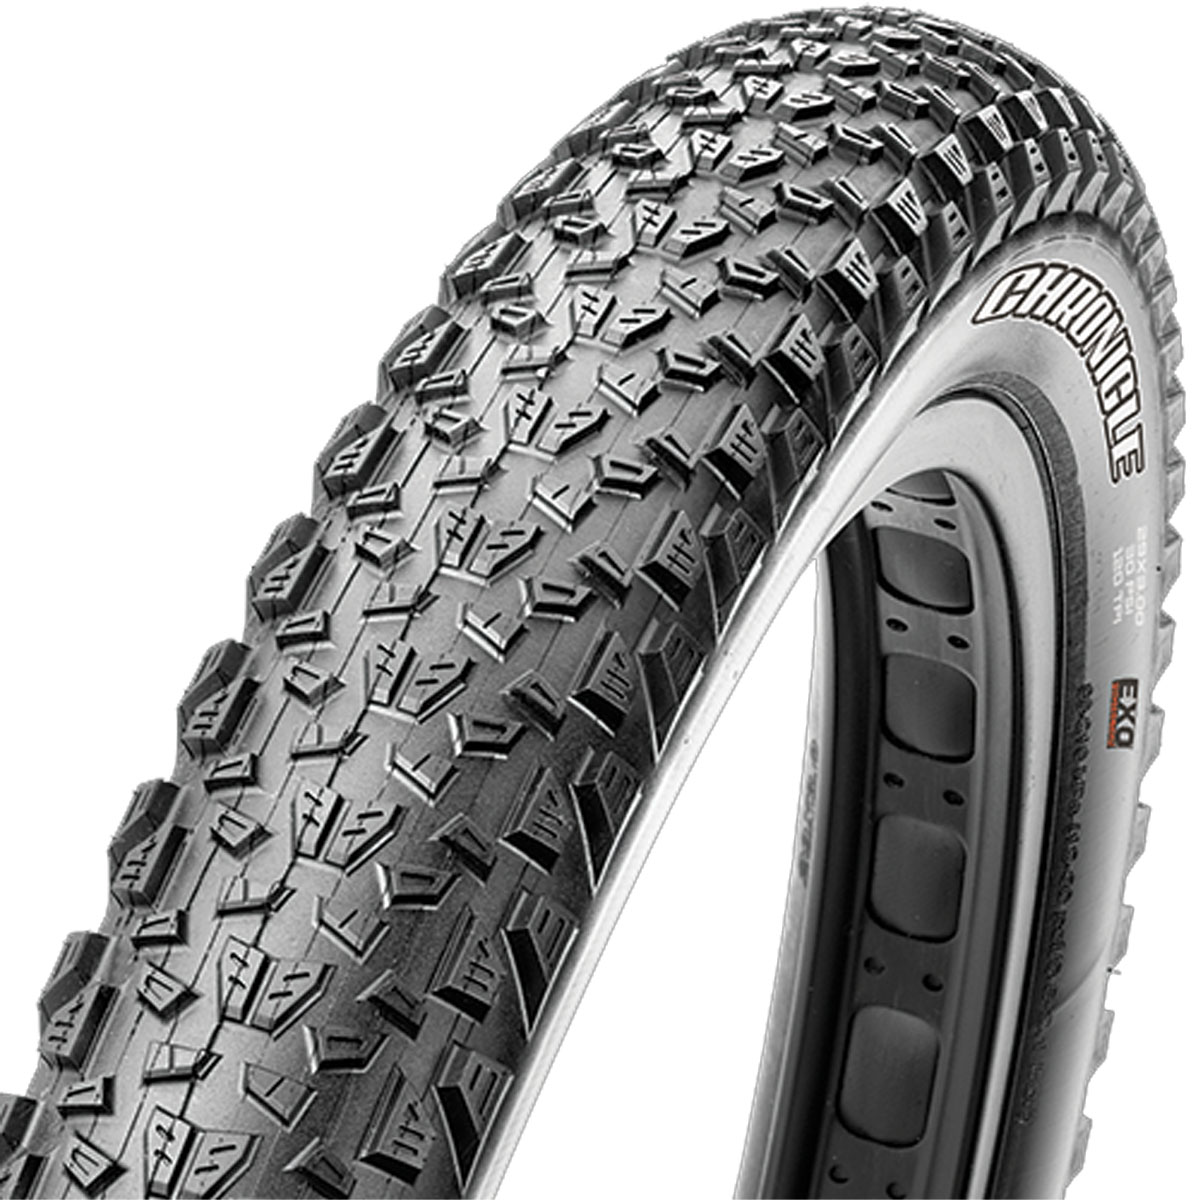 Maxxis Chronicle Dual Compount EXO Tubeless Ready Folding Bead Knobby Mountain Bicycle Tire